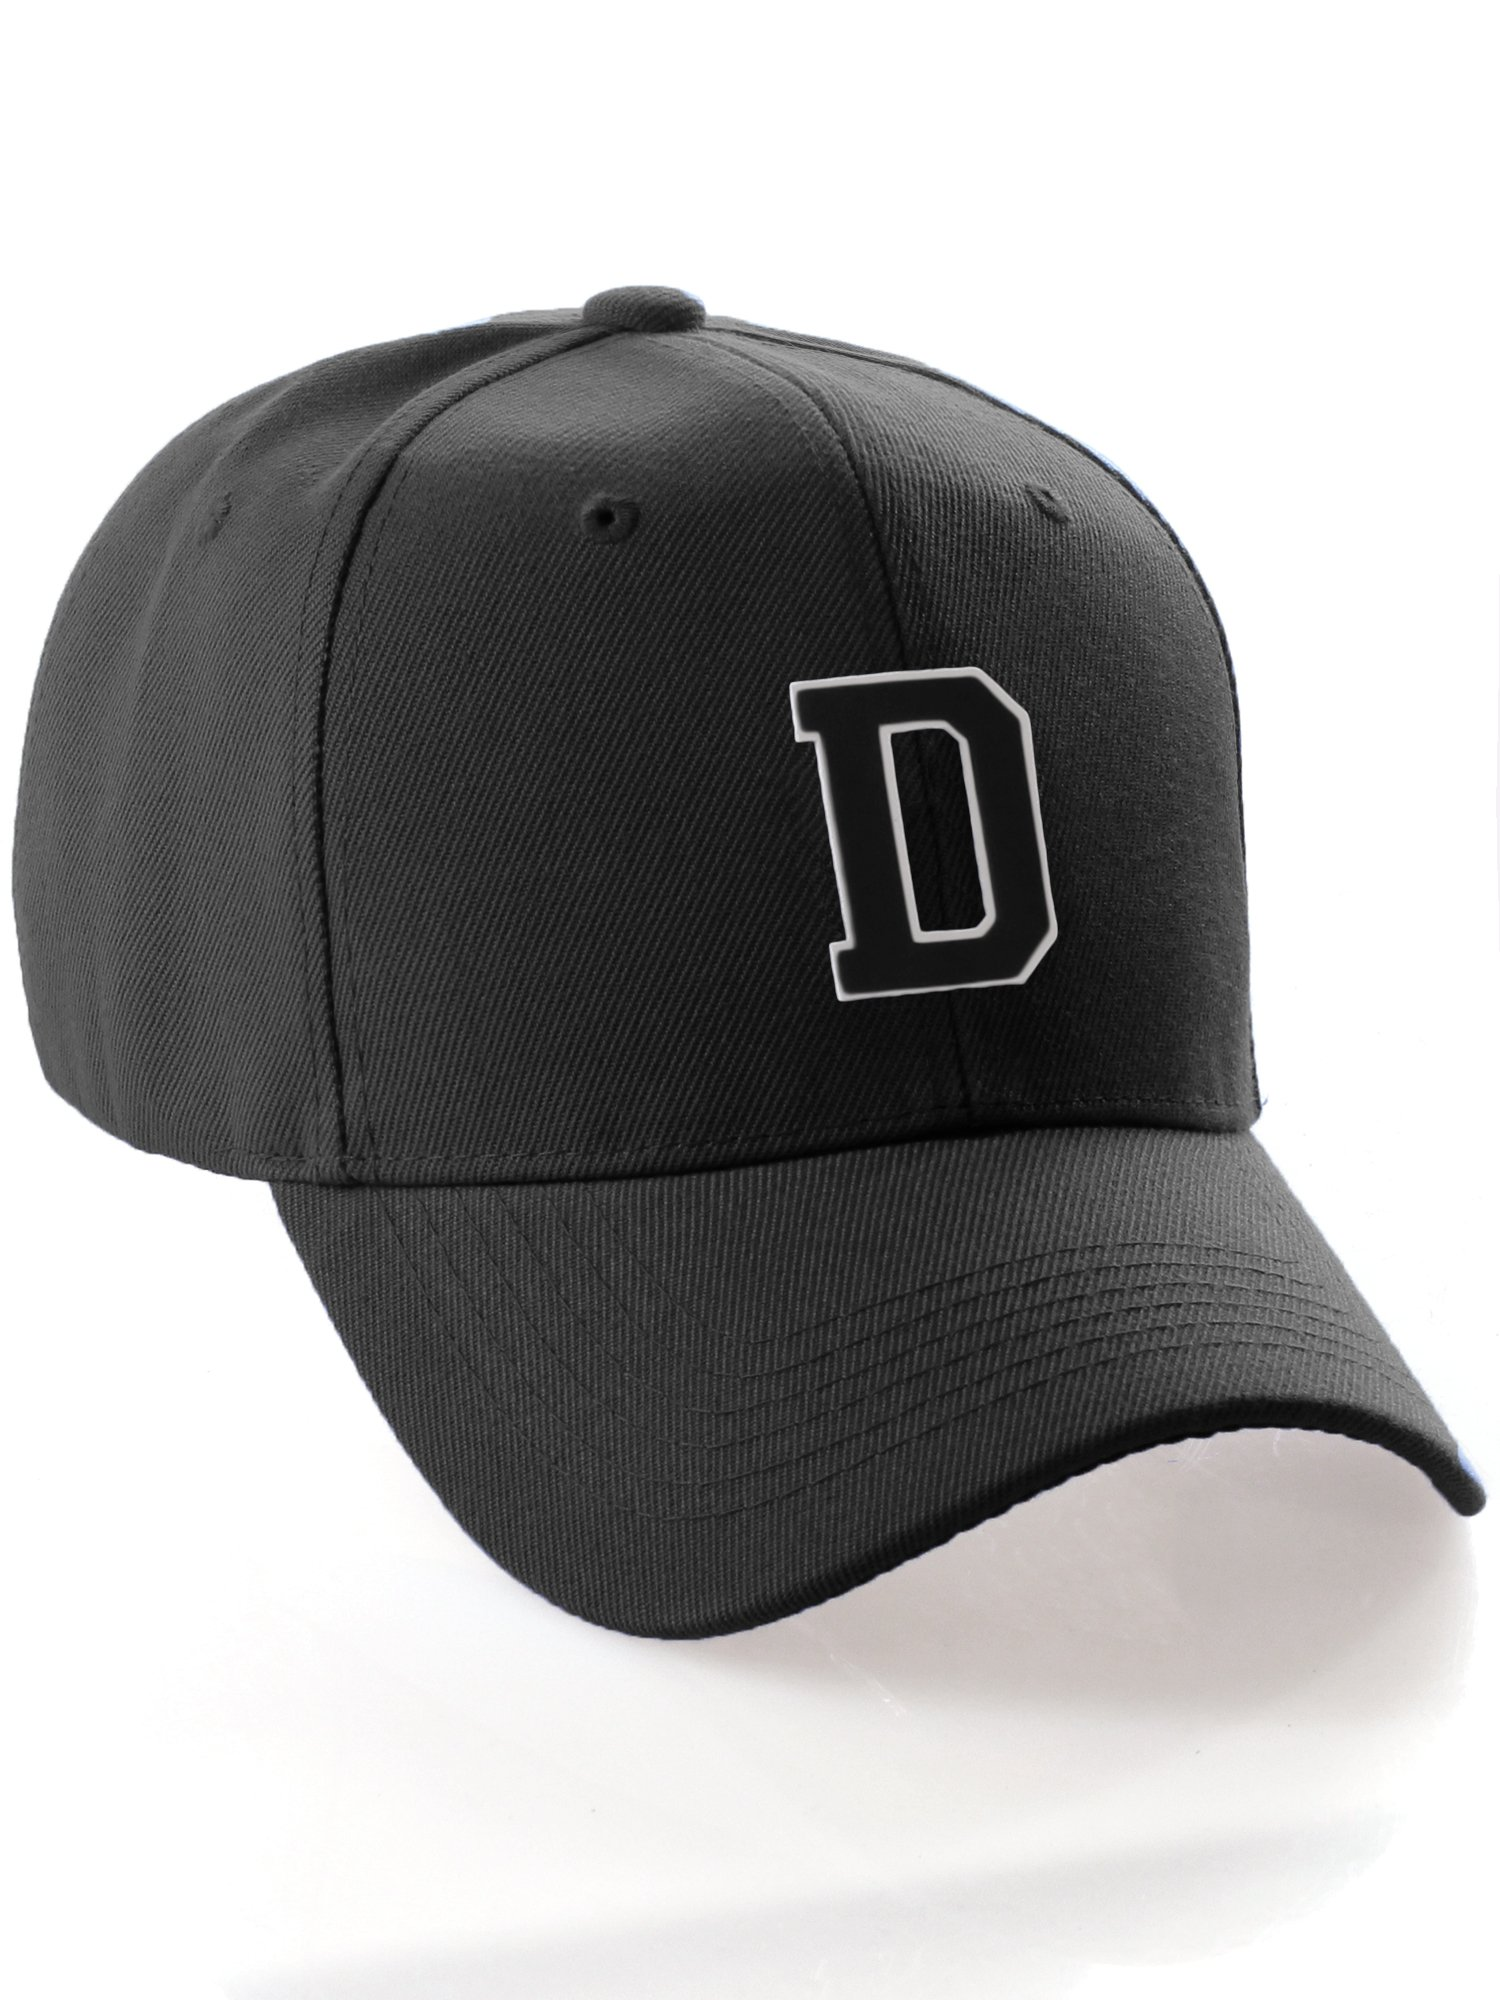 Classic Structured Baseball Cap Cutstom Initial Letters A to Z Double Layer  Raised - Black Hat White Black Letter D 5a60434869cc